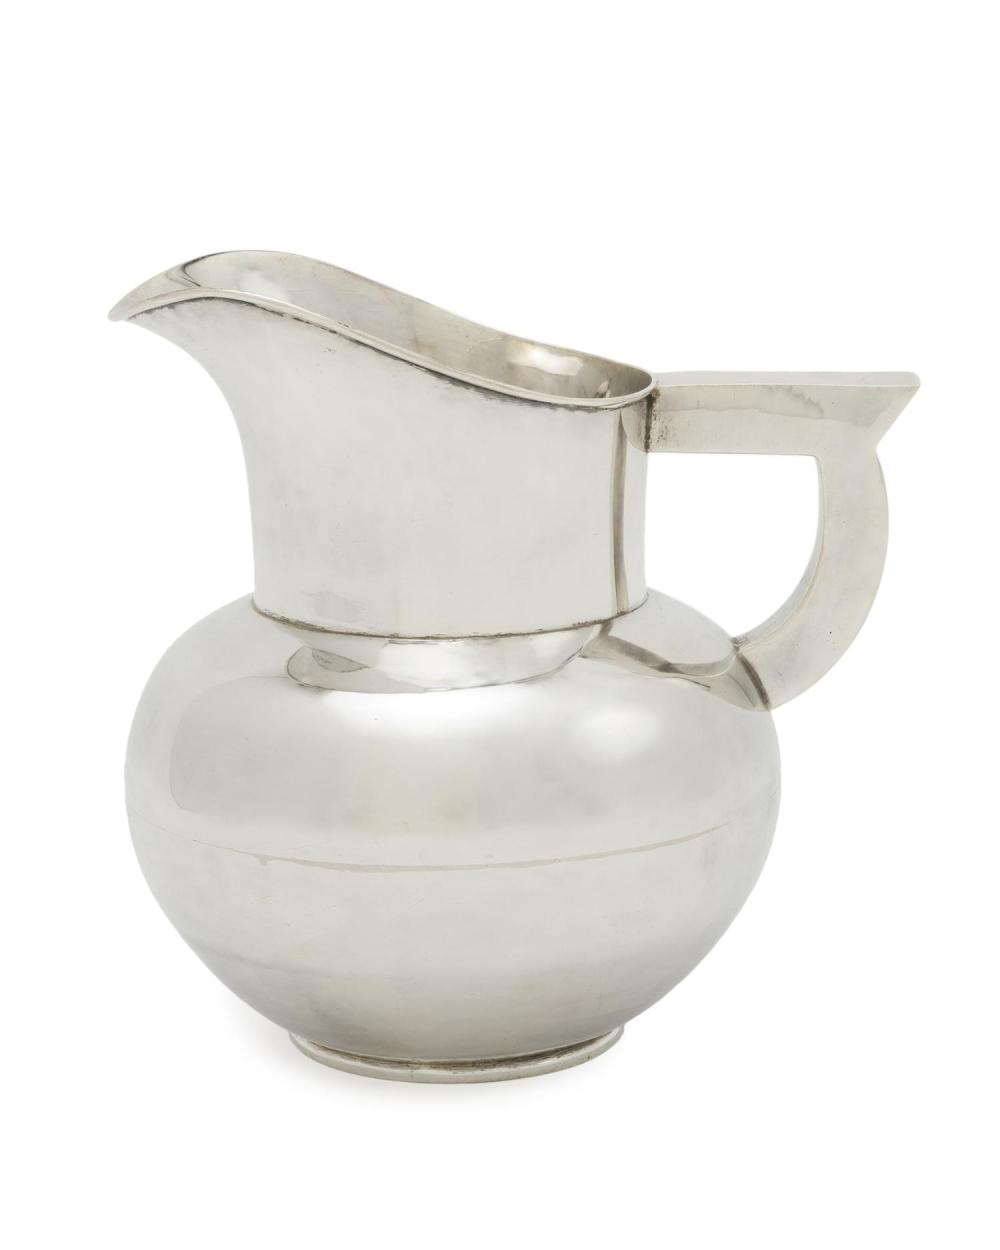 A Hector Aguilar sterling silver water pitcher